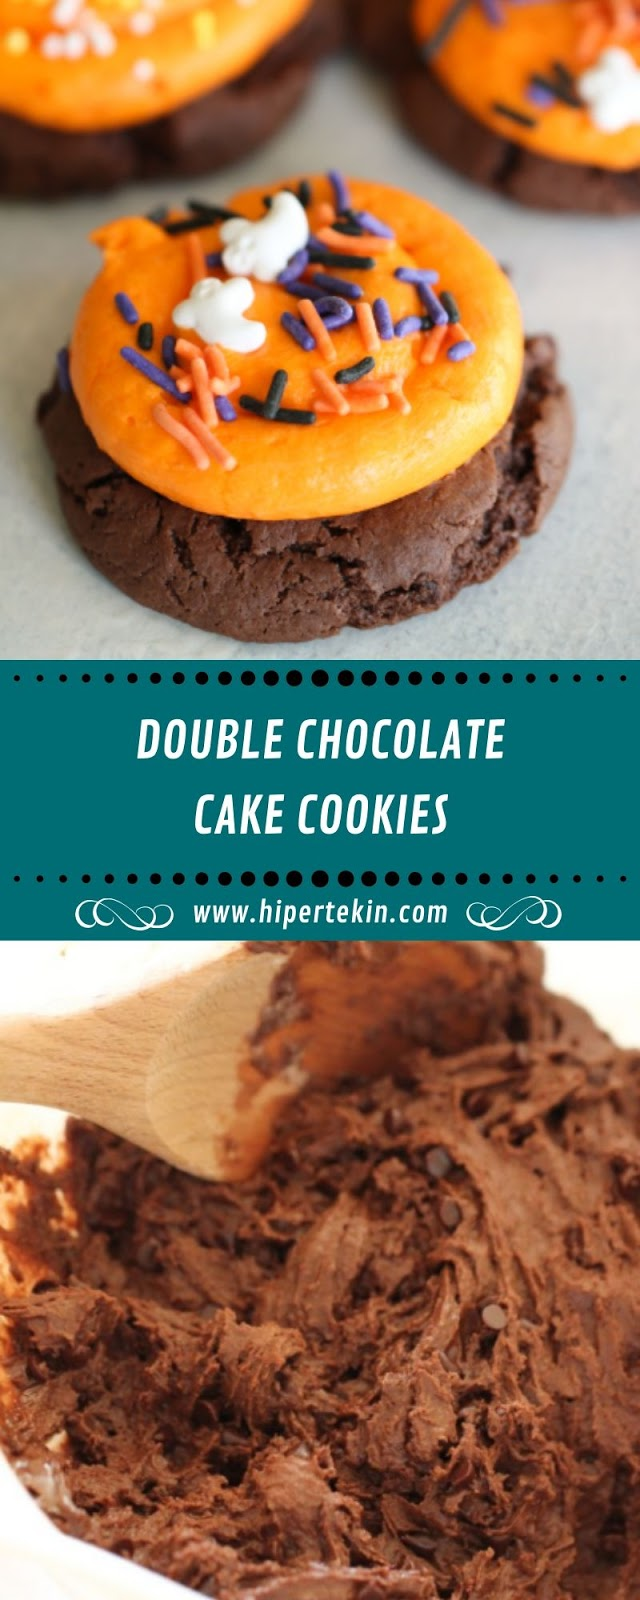 DOUBLE CHOCOLATE CAKE COOKIES